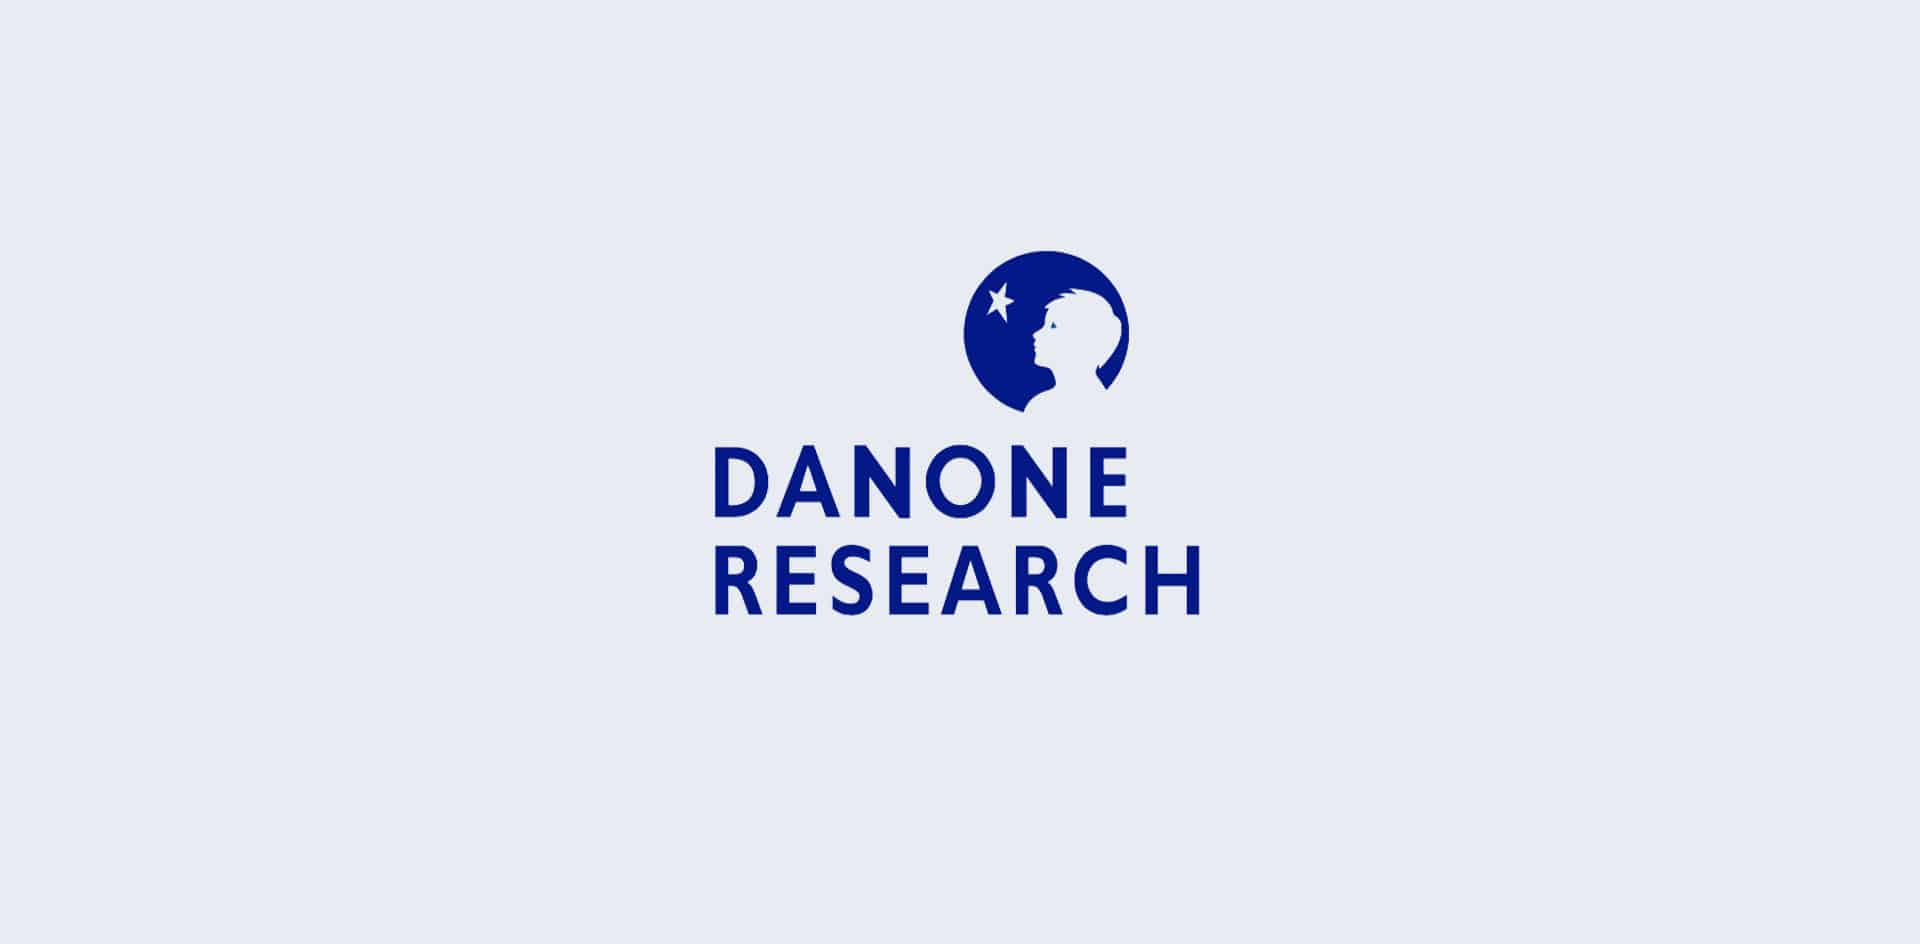 danone-research-logo-cover